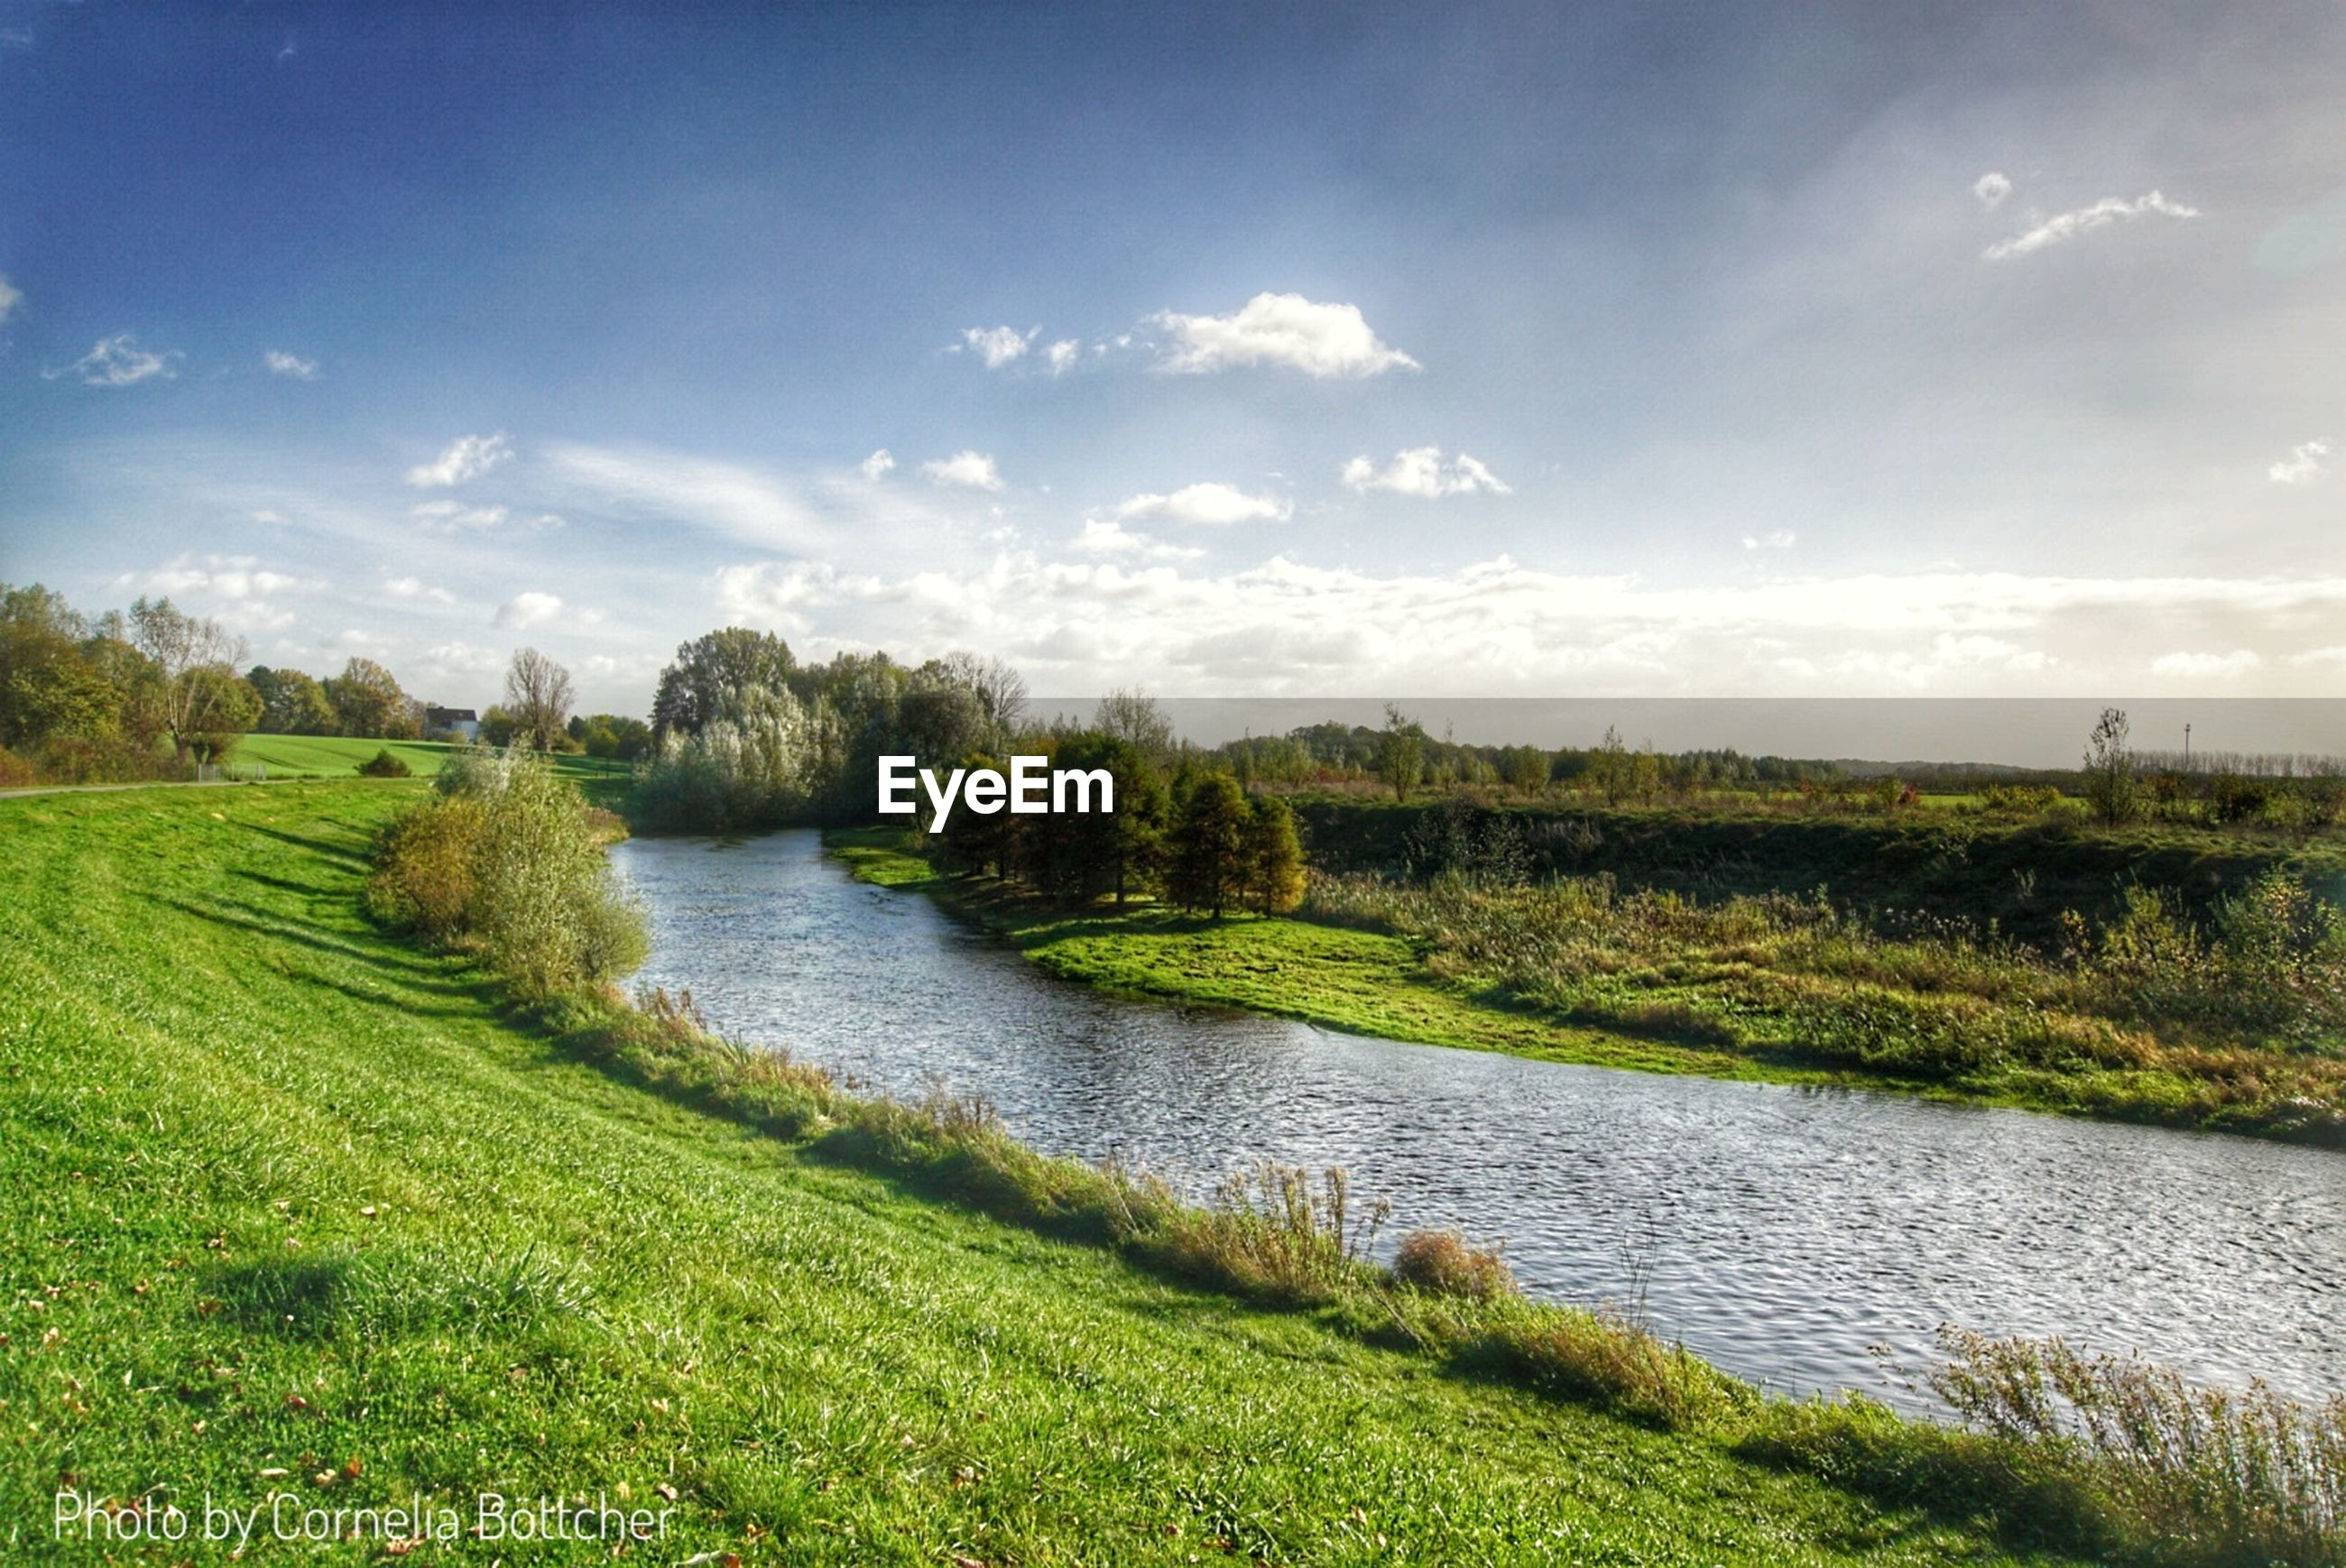 grass, nature, tranquility, beauty in nature, tranquil scene, scenics, water, green color, growth, landscape, tree, field, sky, no people, outdoors, river, day, cloud - sky